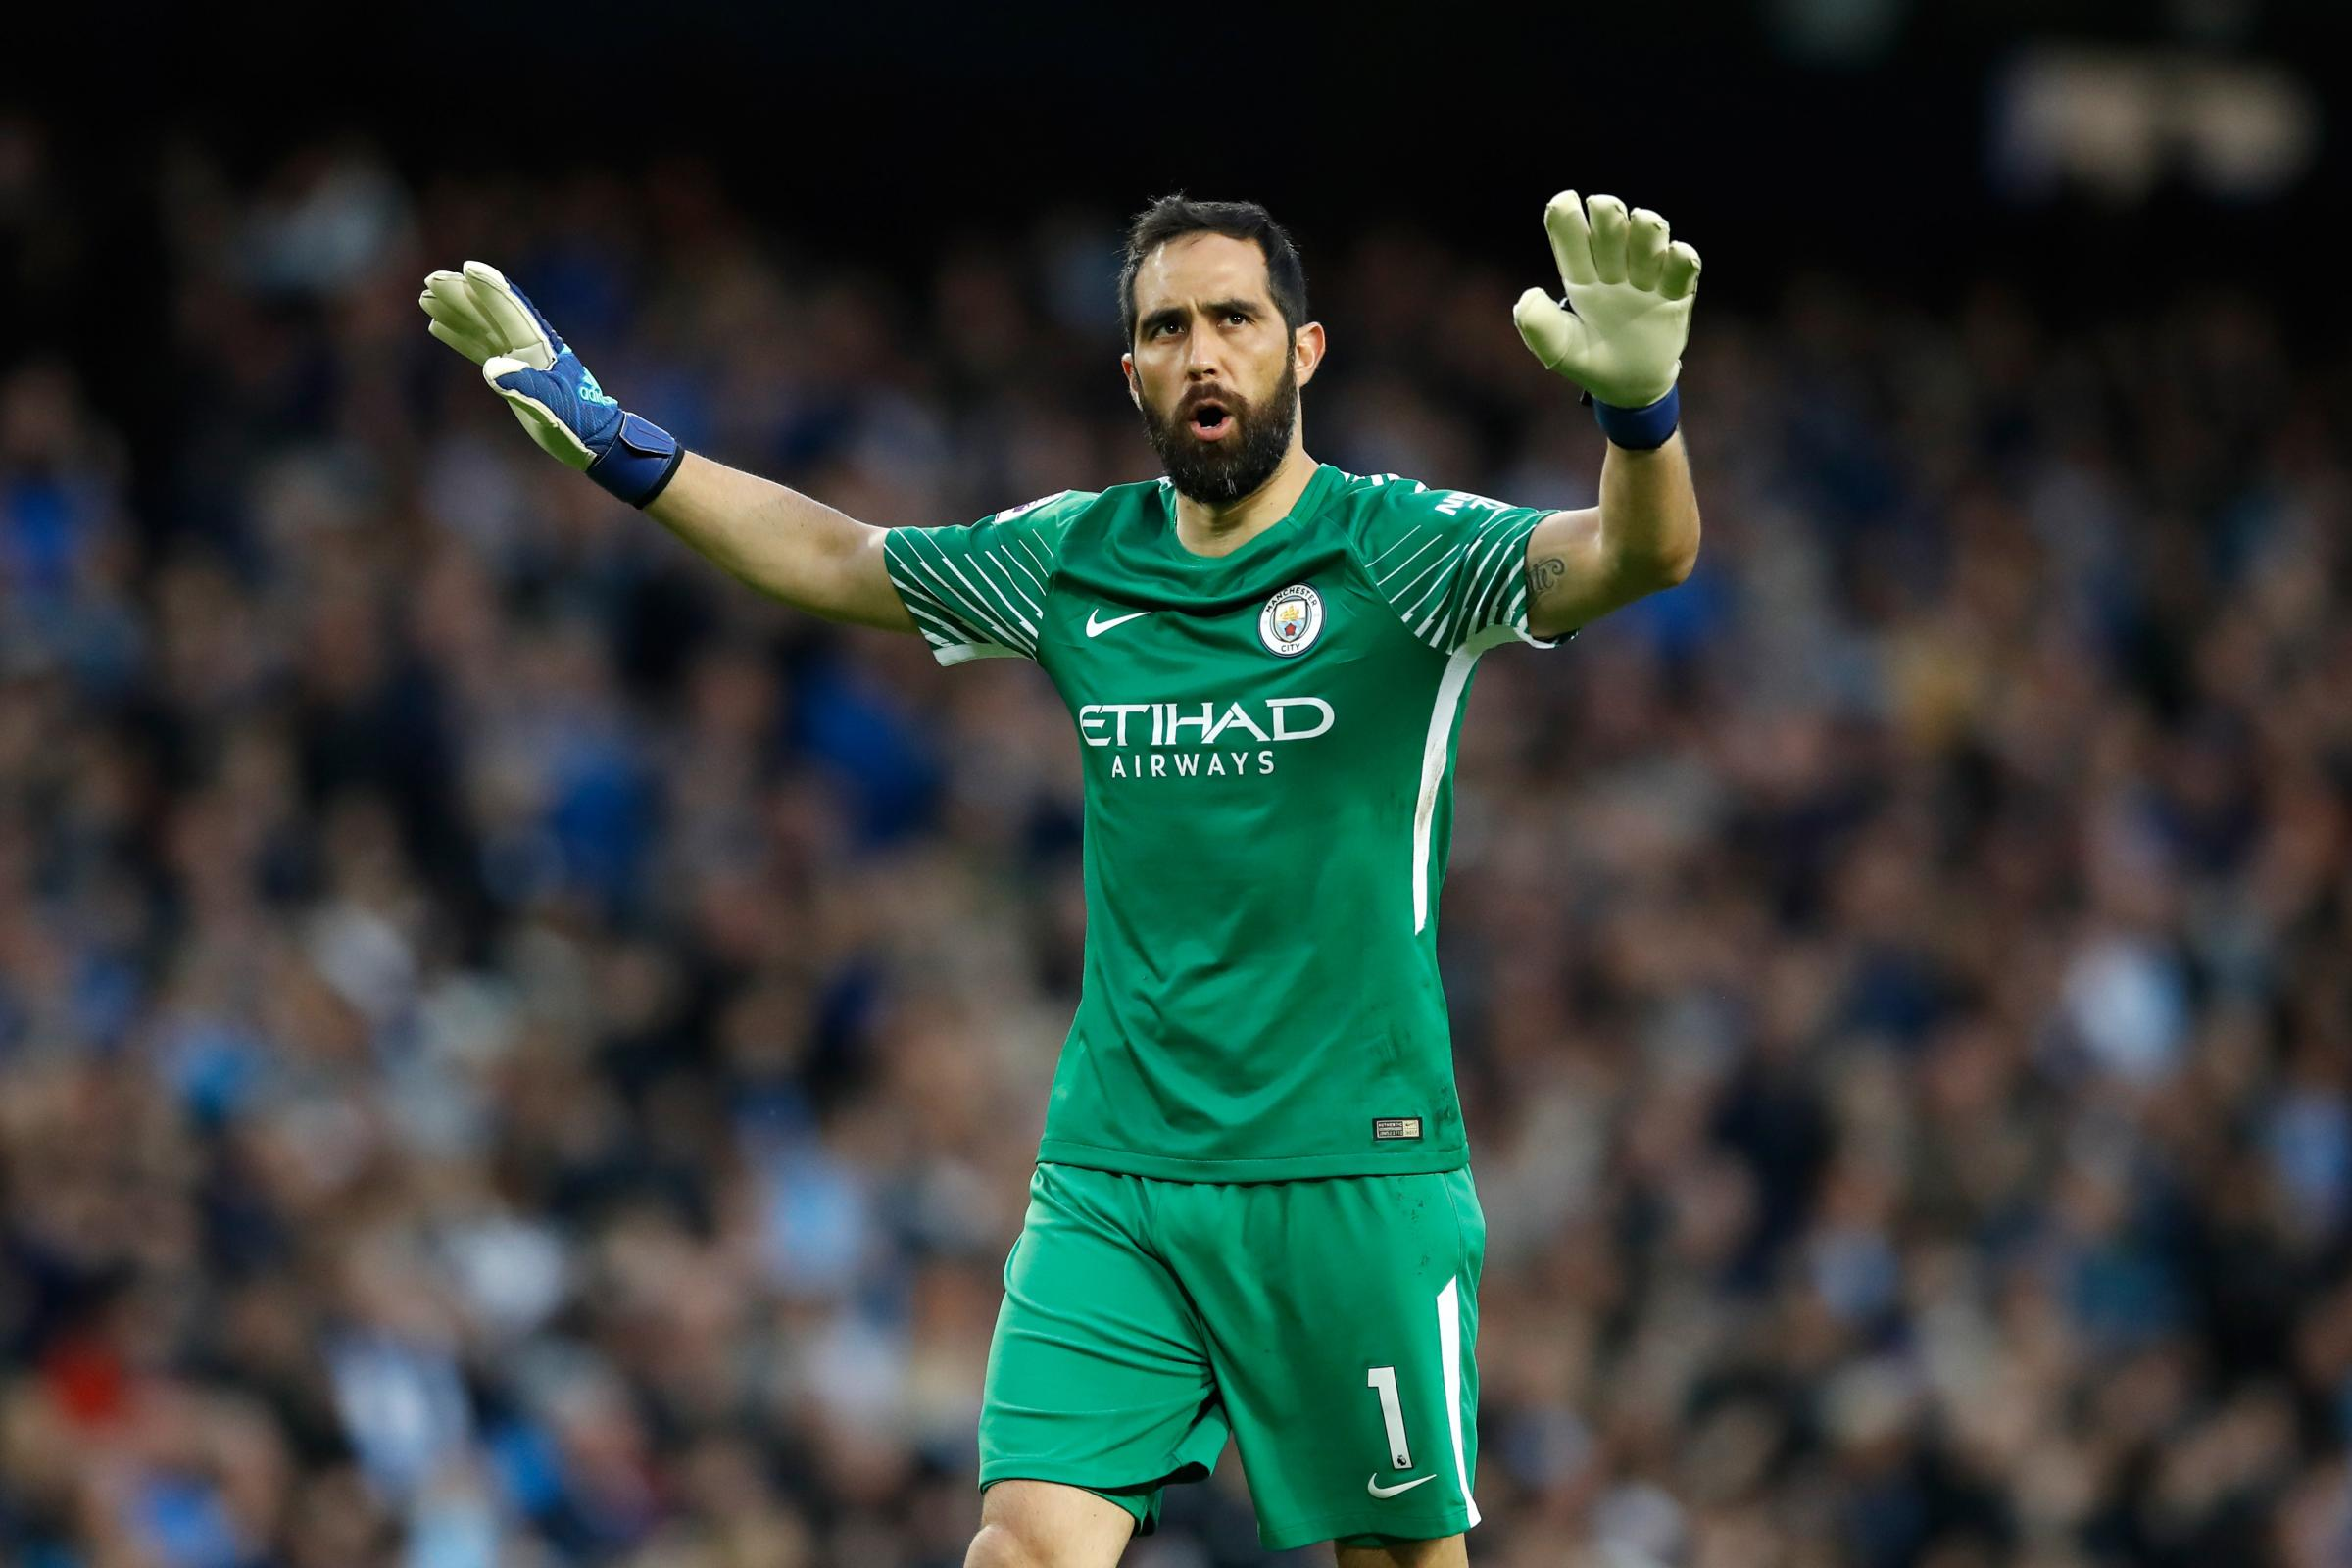 Injury to Claudio Bravo has restricted Manchester City's goalkeeping options